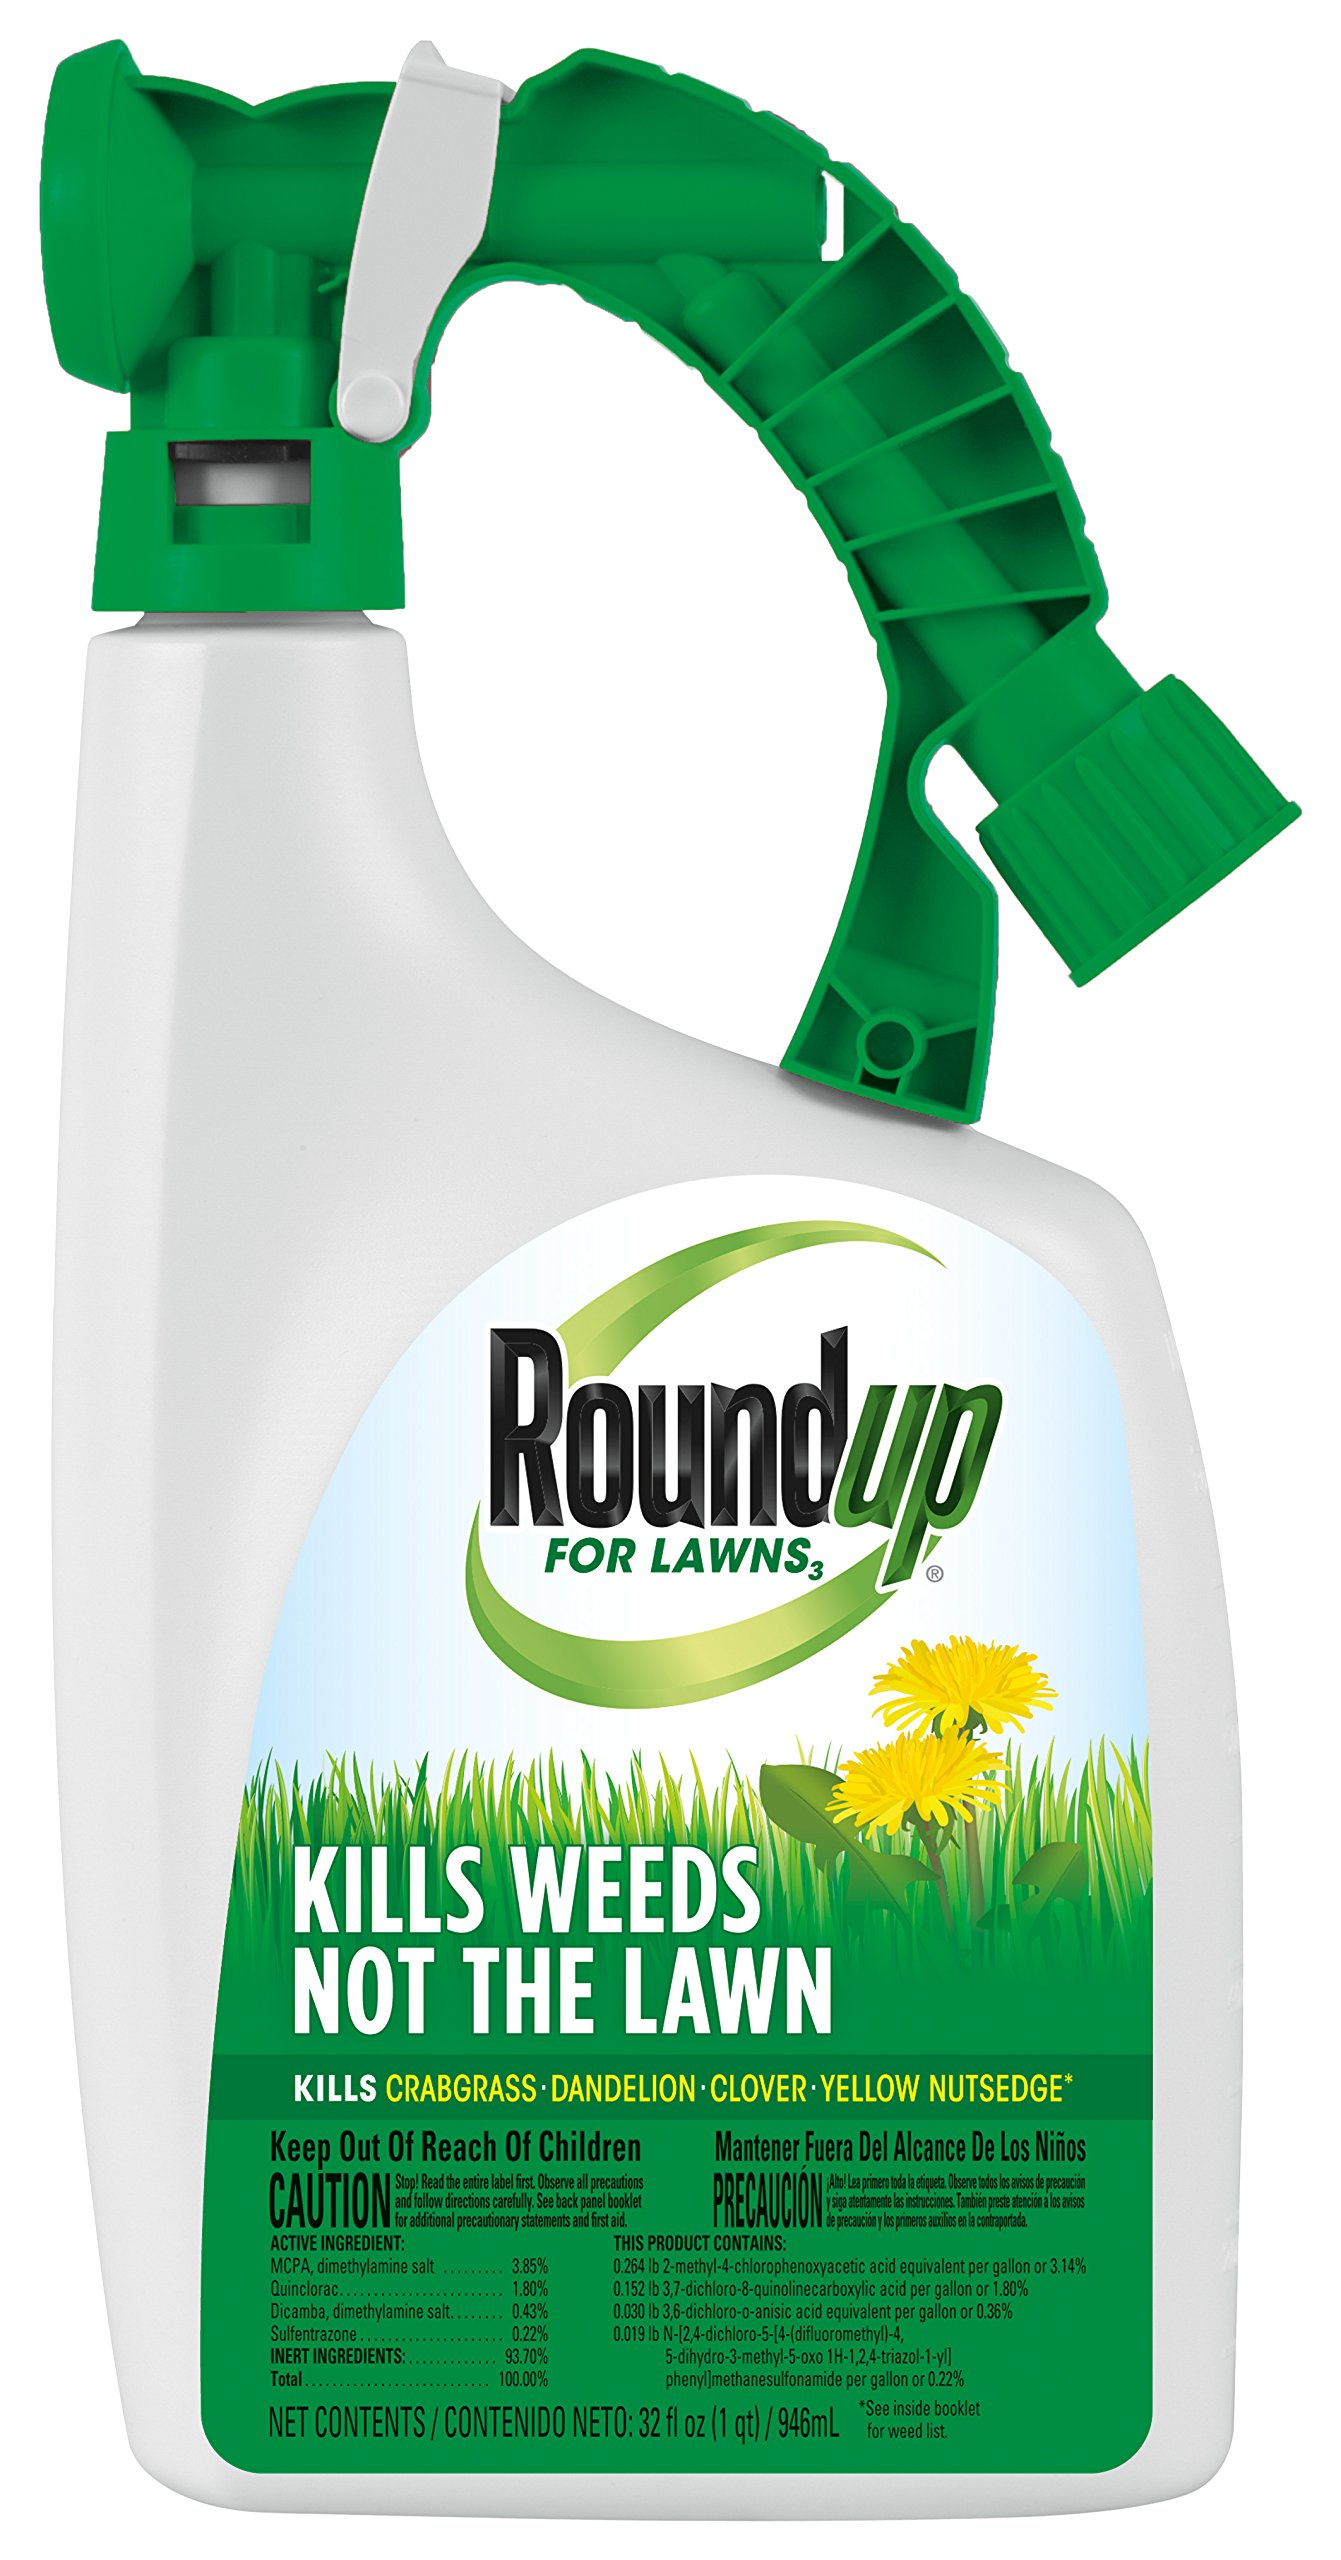 Roundup For Lawns RTS (Northern) - 32oz by Roundup